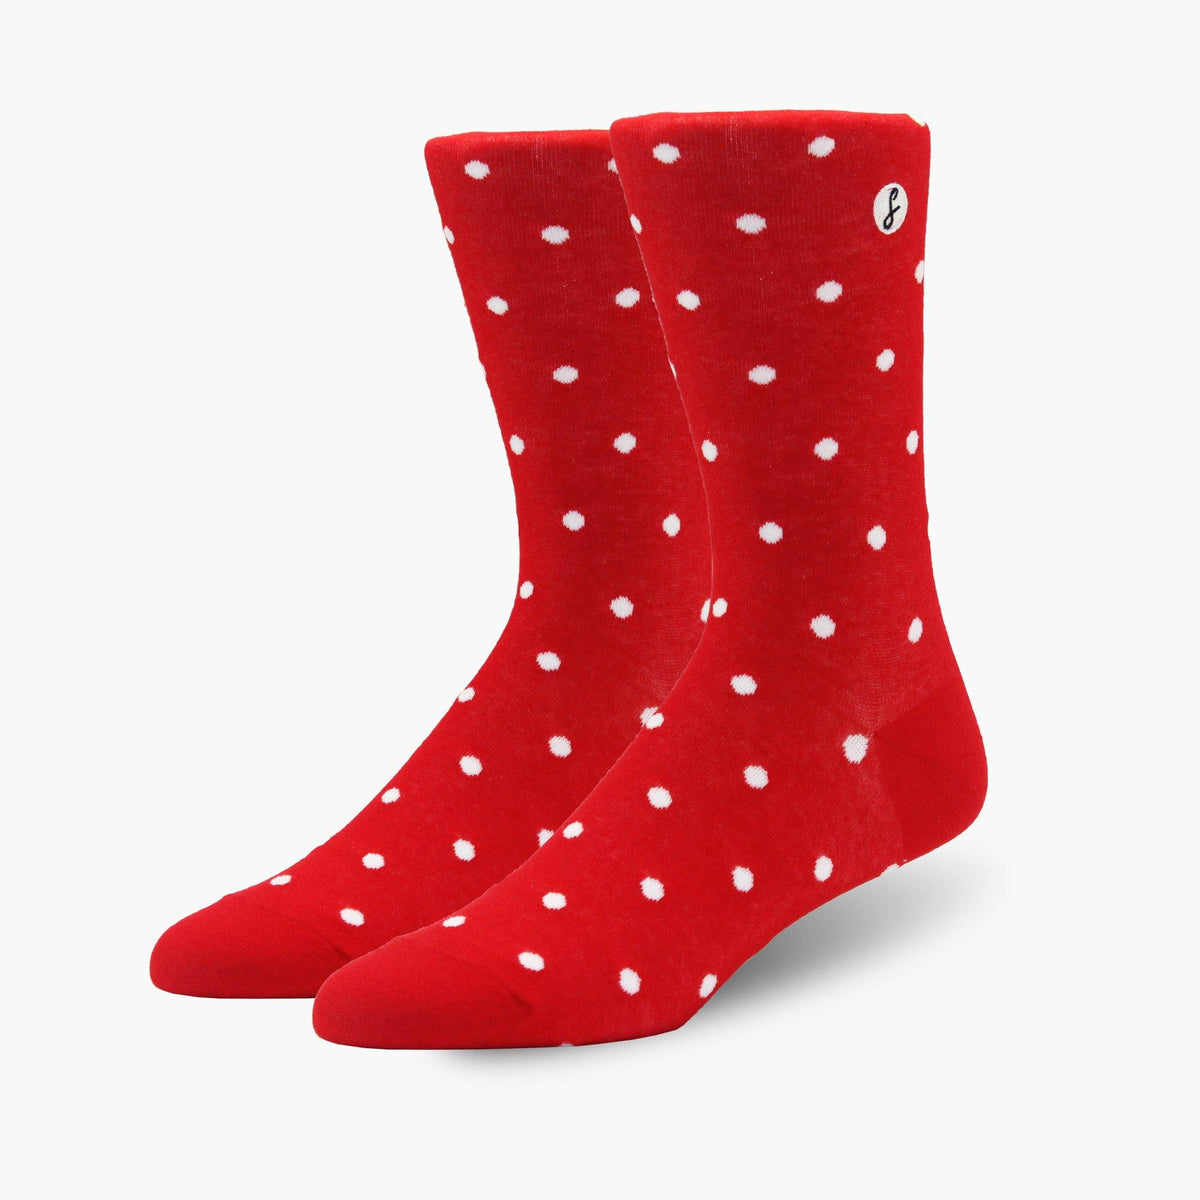 Red Polka Dot Combed Cotton Crew Length Swanky Socks - SwankySocks